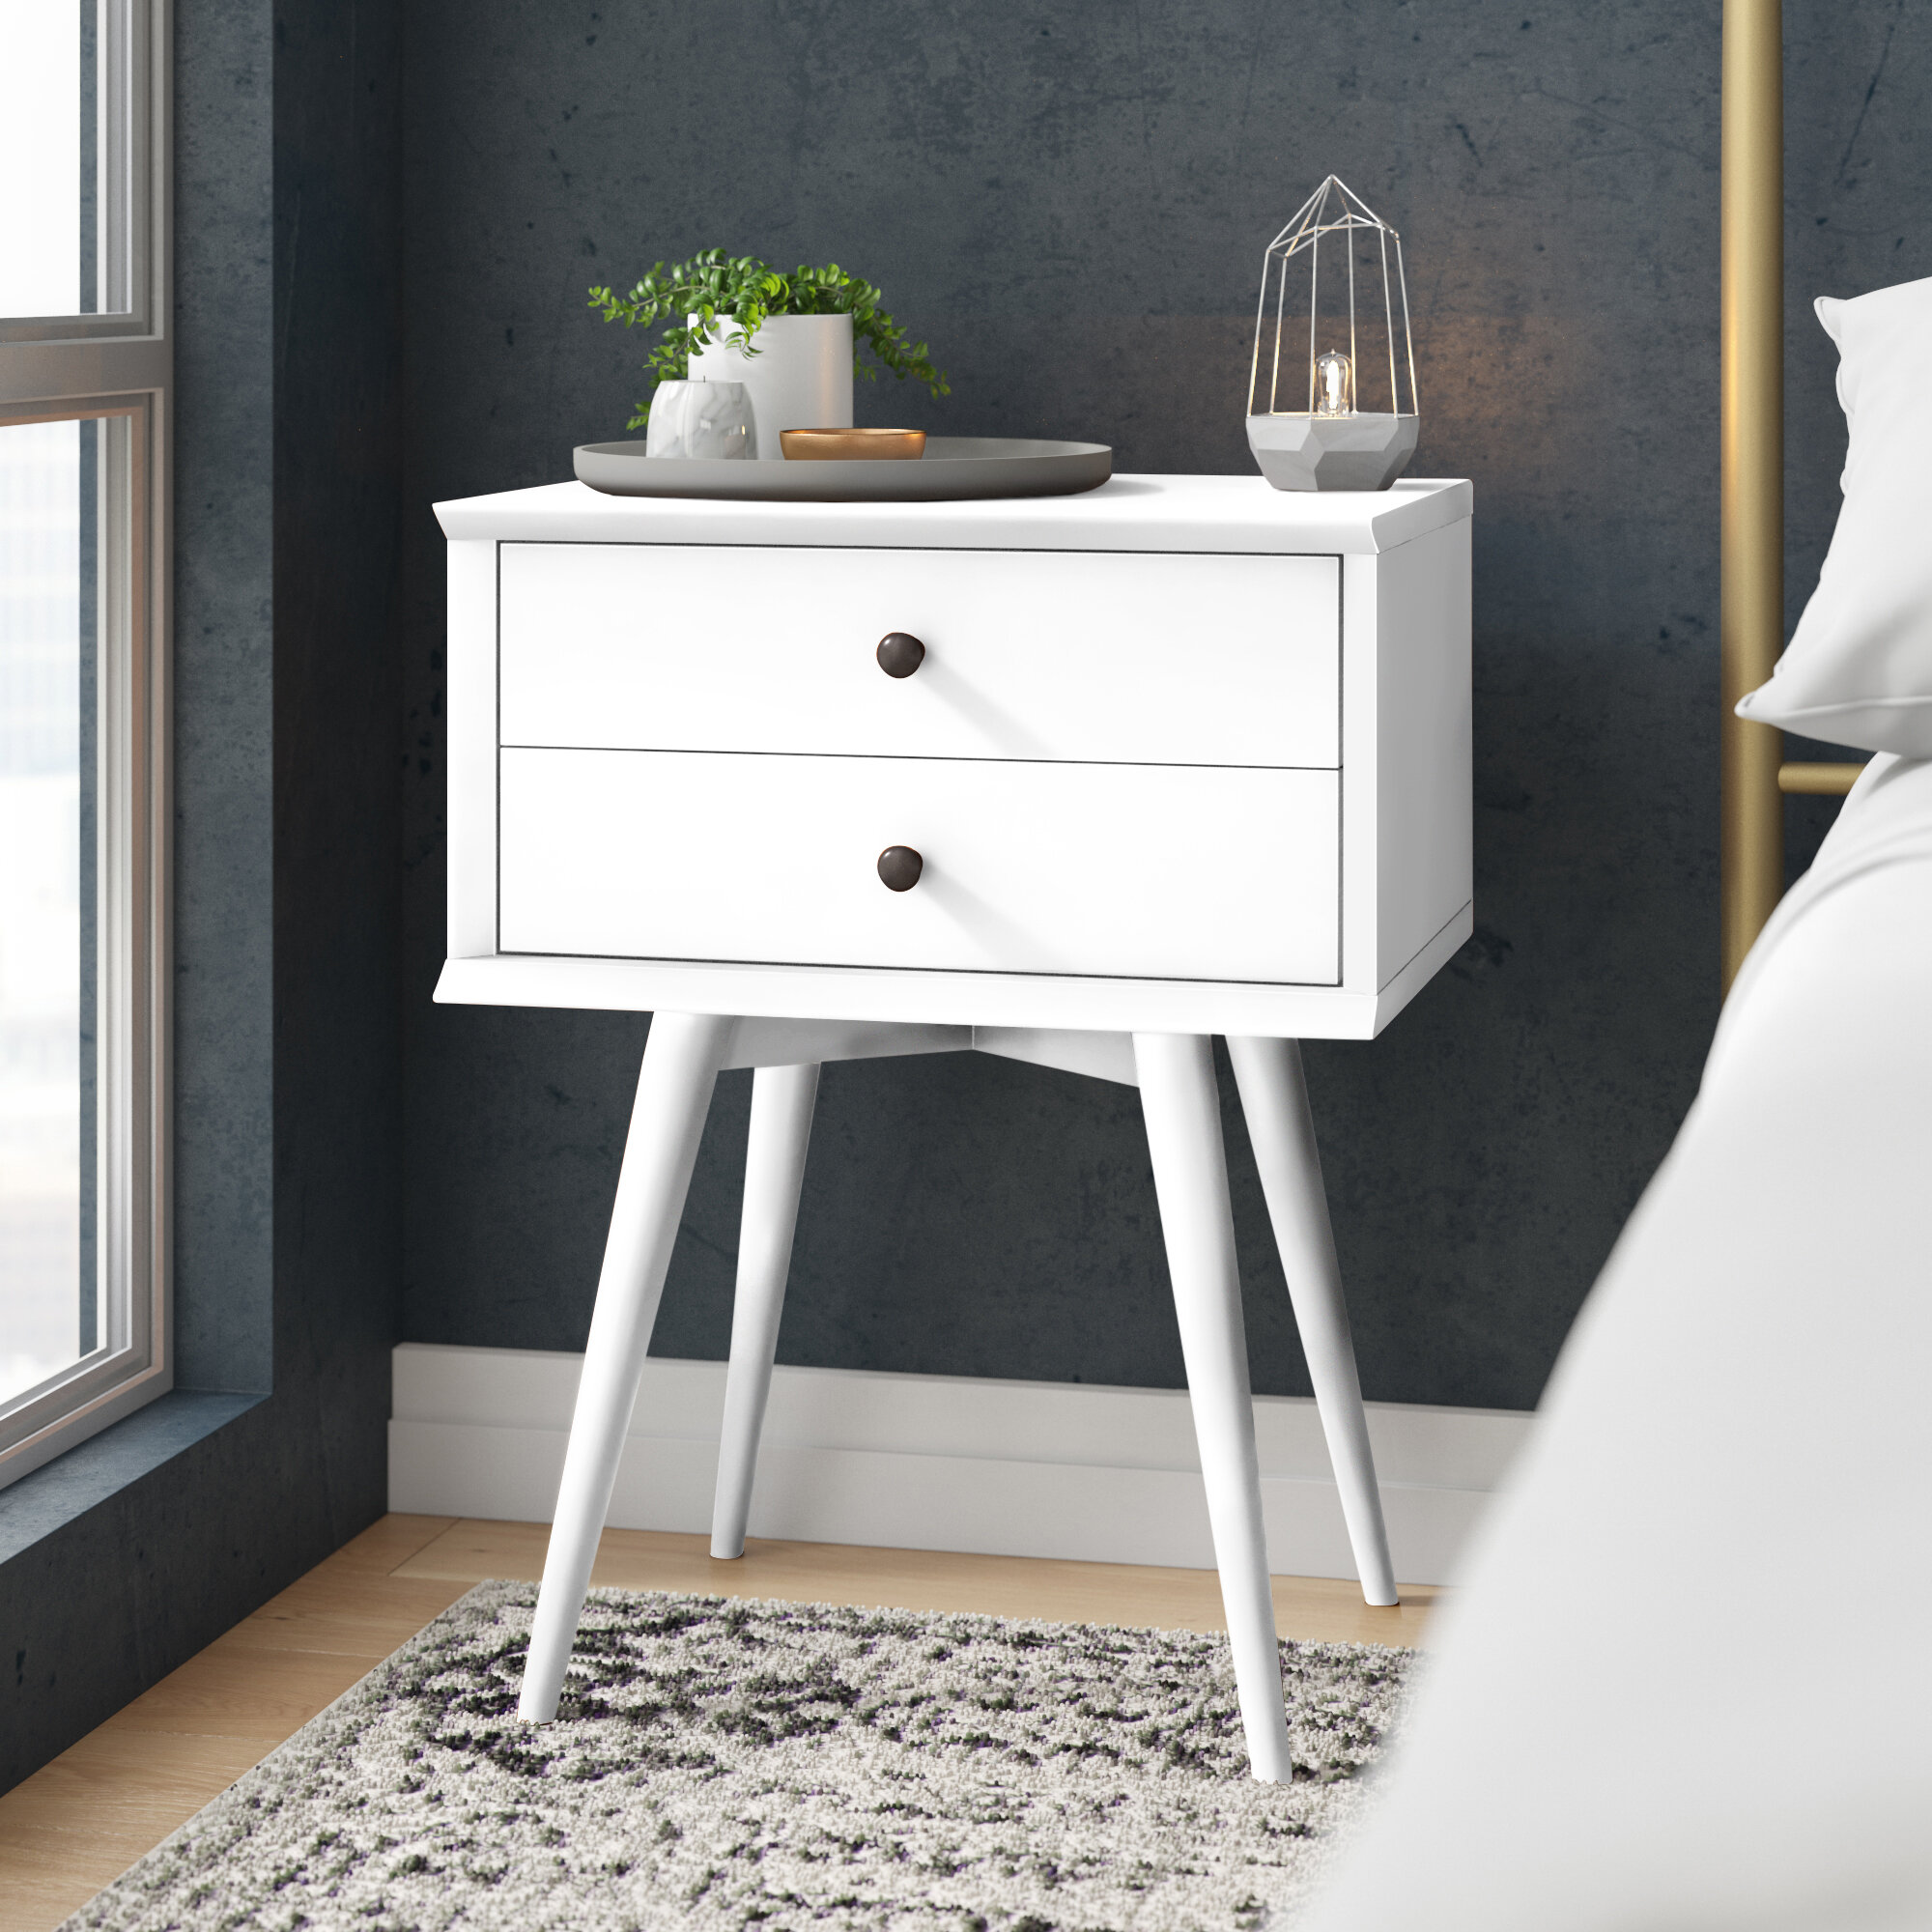 Gold White Nightstands Free Shipping Over 35 Wayfair